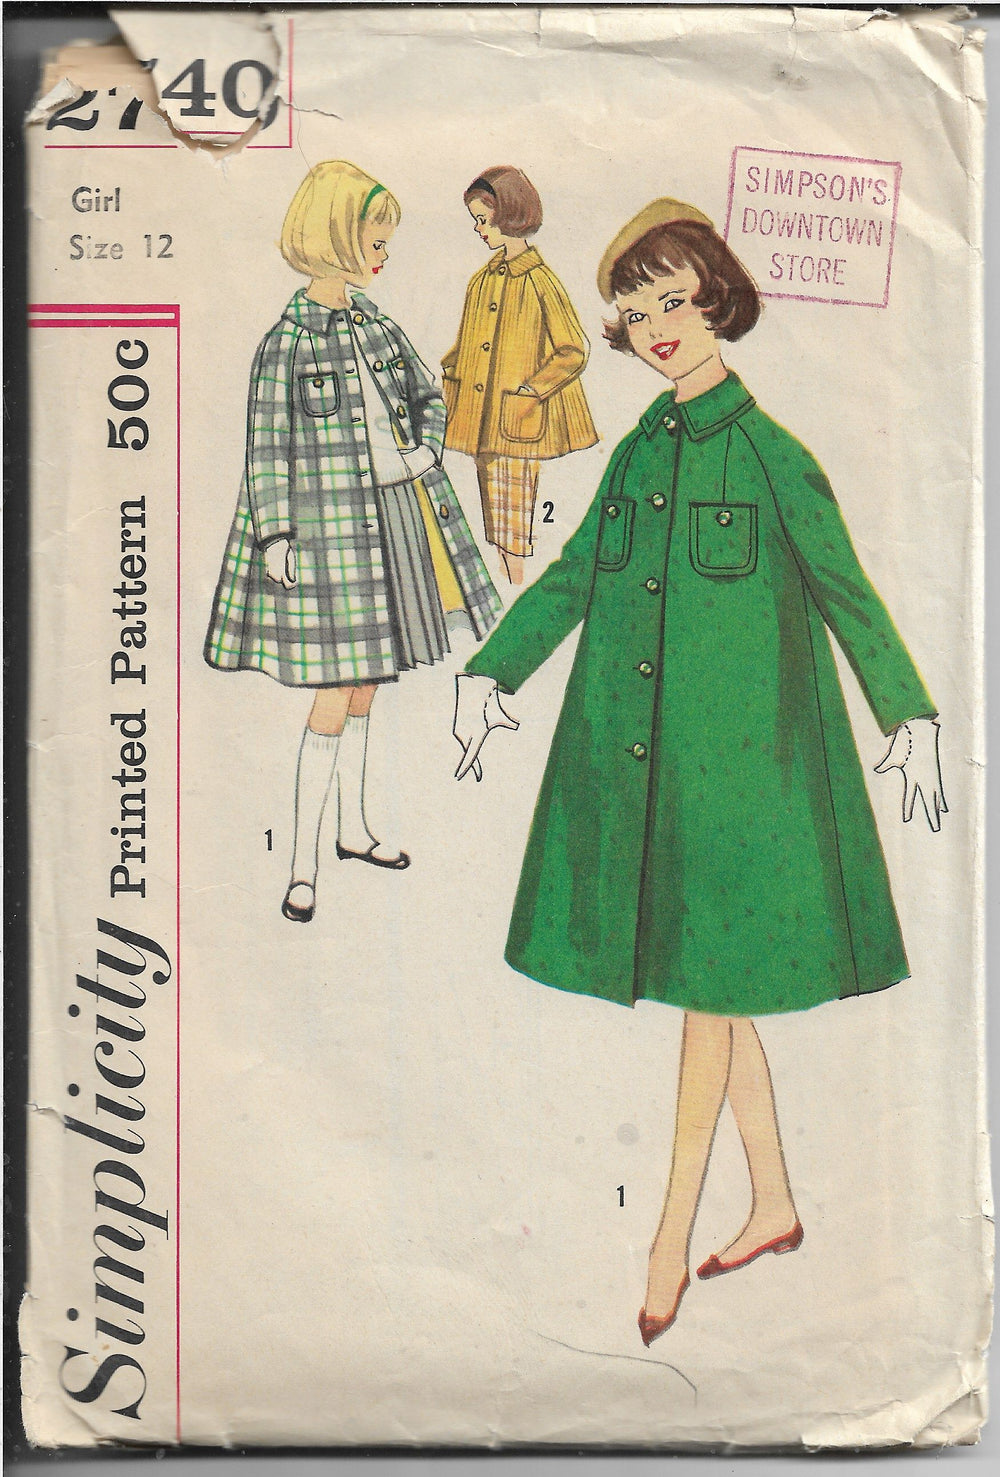 Simplicity 2740 Vintage Sewing Pattern 1950s Girls Coat - VintageStitching - Vintage Sewing Patterns